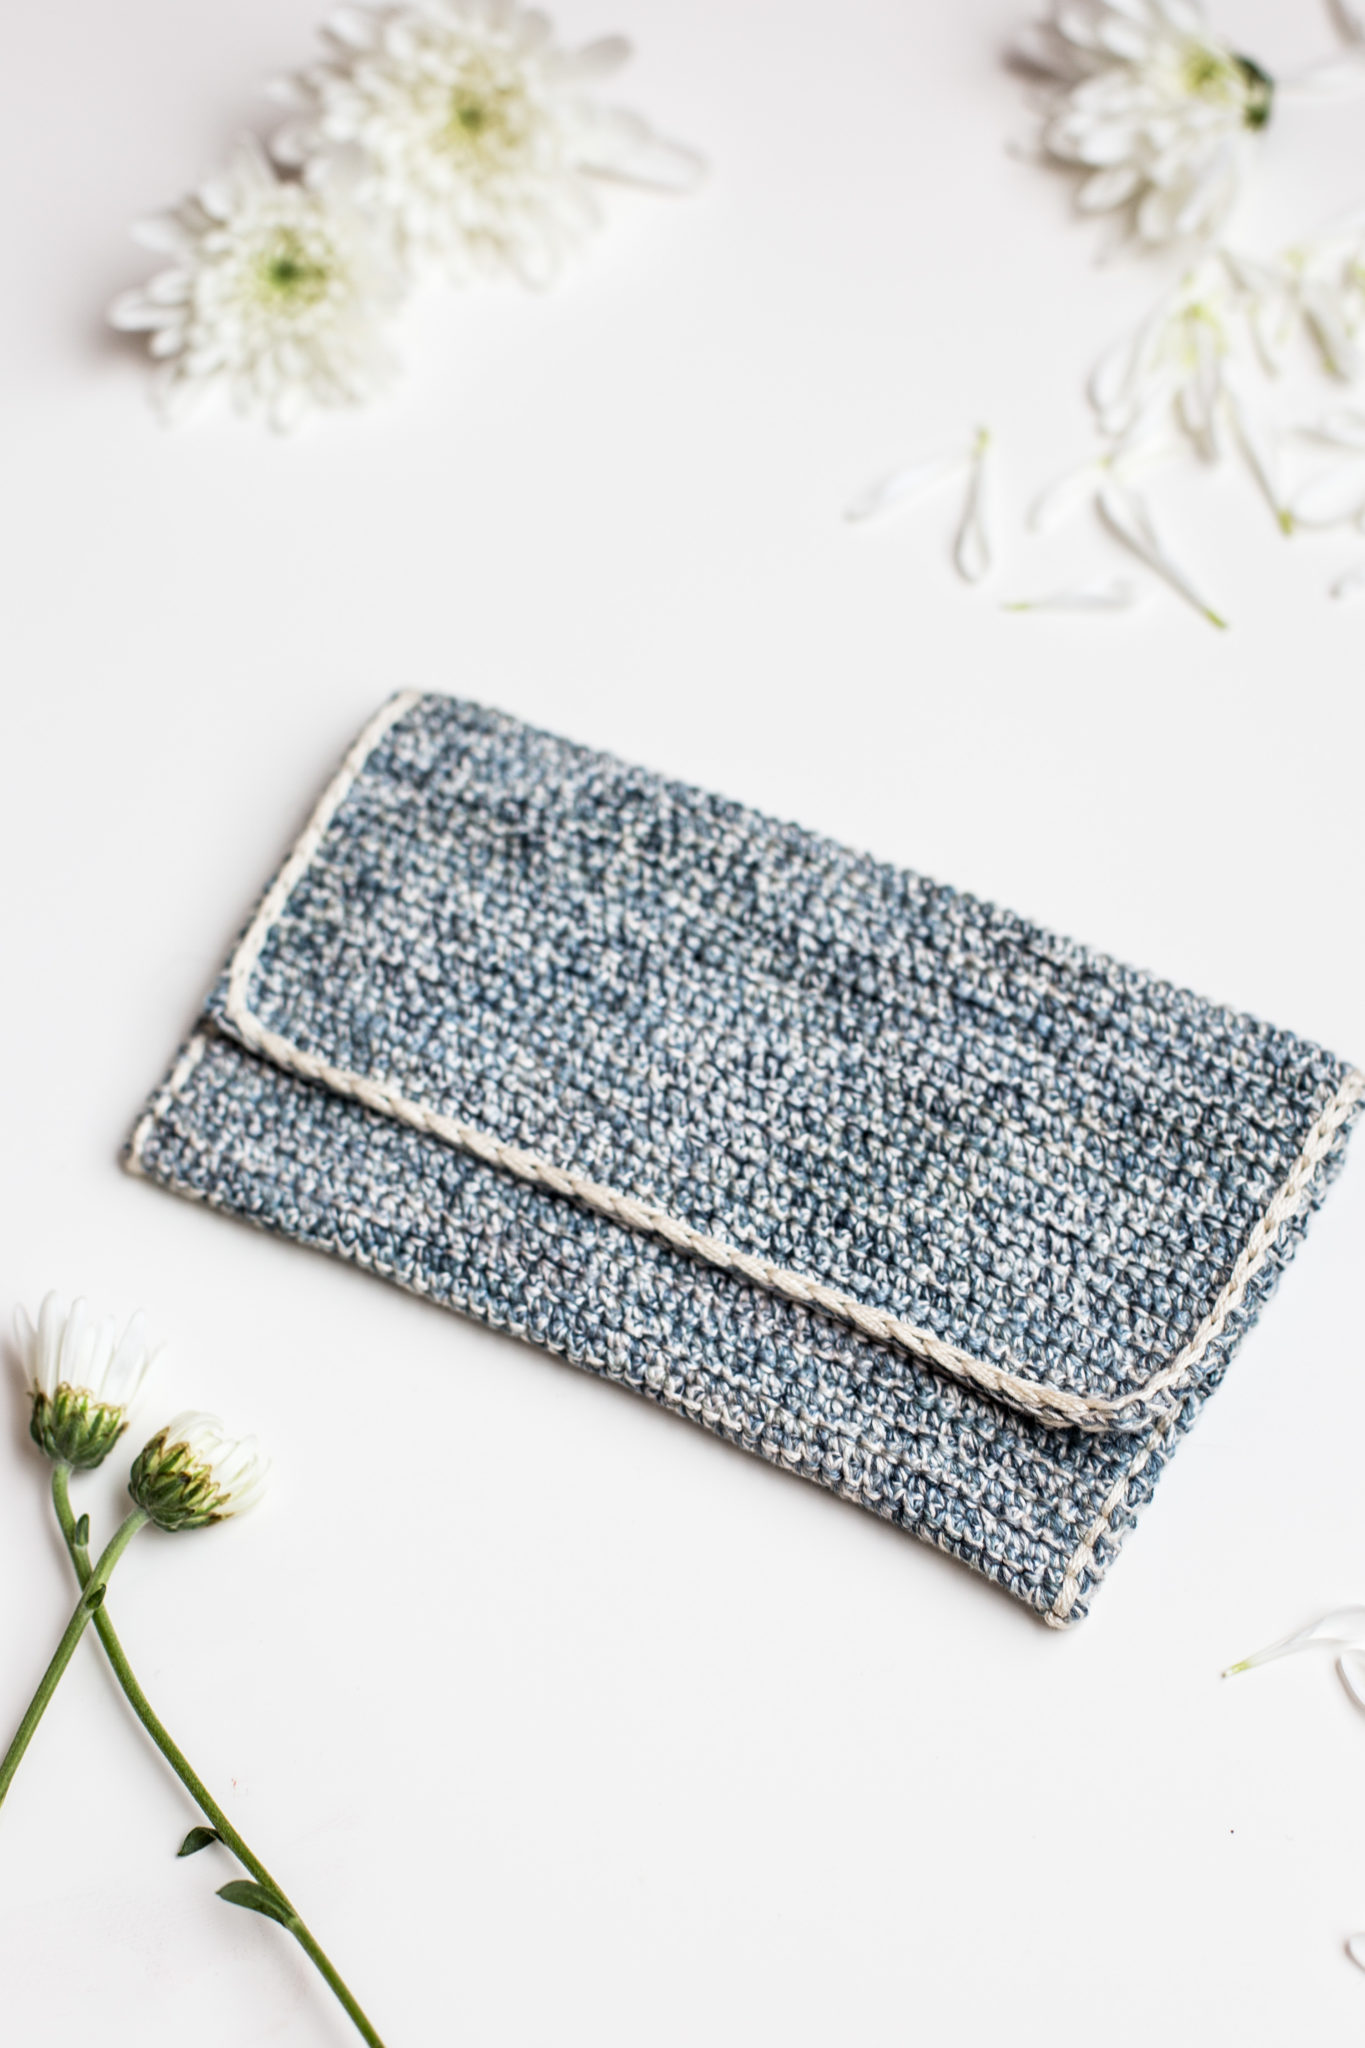 Crochet Clutch Pattern : Marled Crochet Clutch Pattern by Anne Weil of Flax & Twine